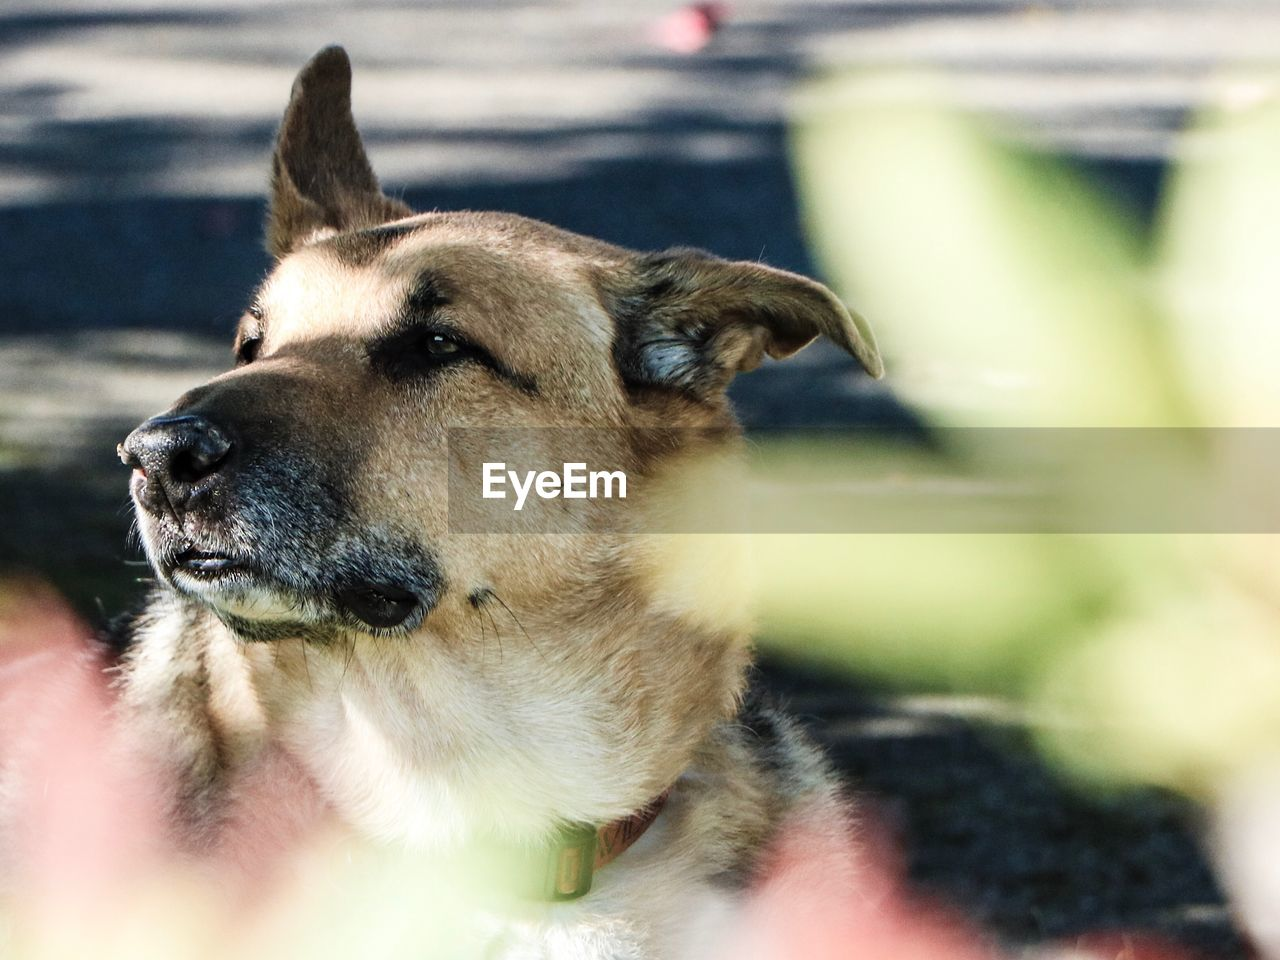 pets, domestic, domestic animals, one animal, animal themes, mammal, animal, canine, dog, vertebrate, looking away, no people, close-up, looking, animal body part, focus on foreground, day, animal head, selective focus, relaxation, snout, animal mouth